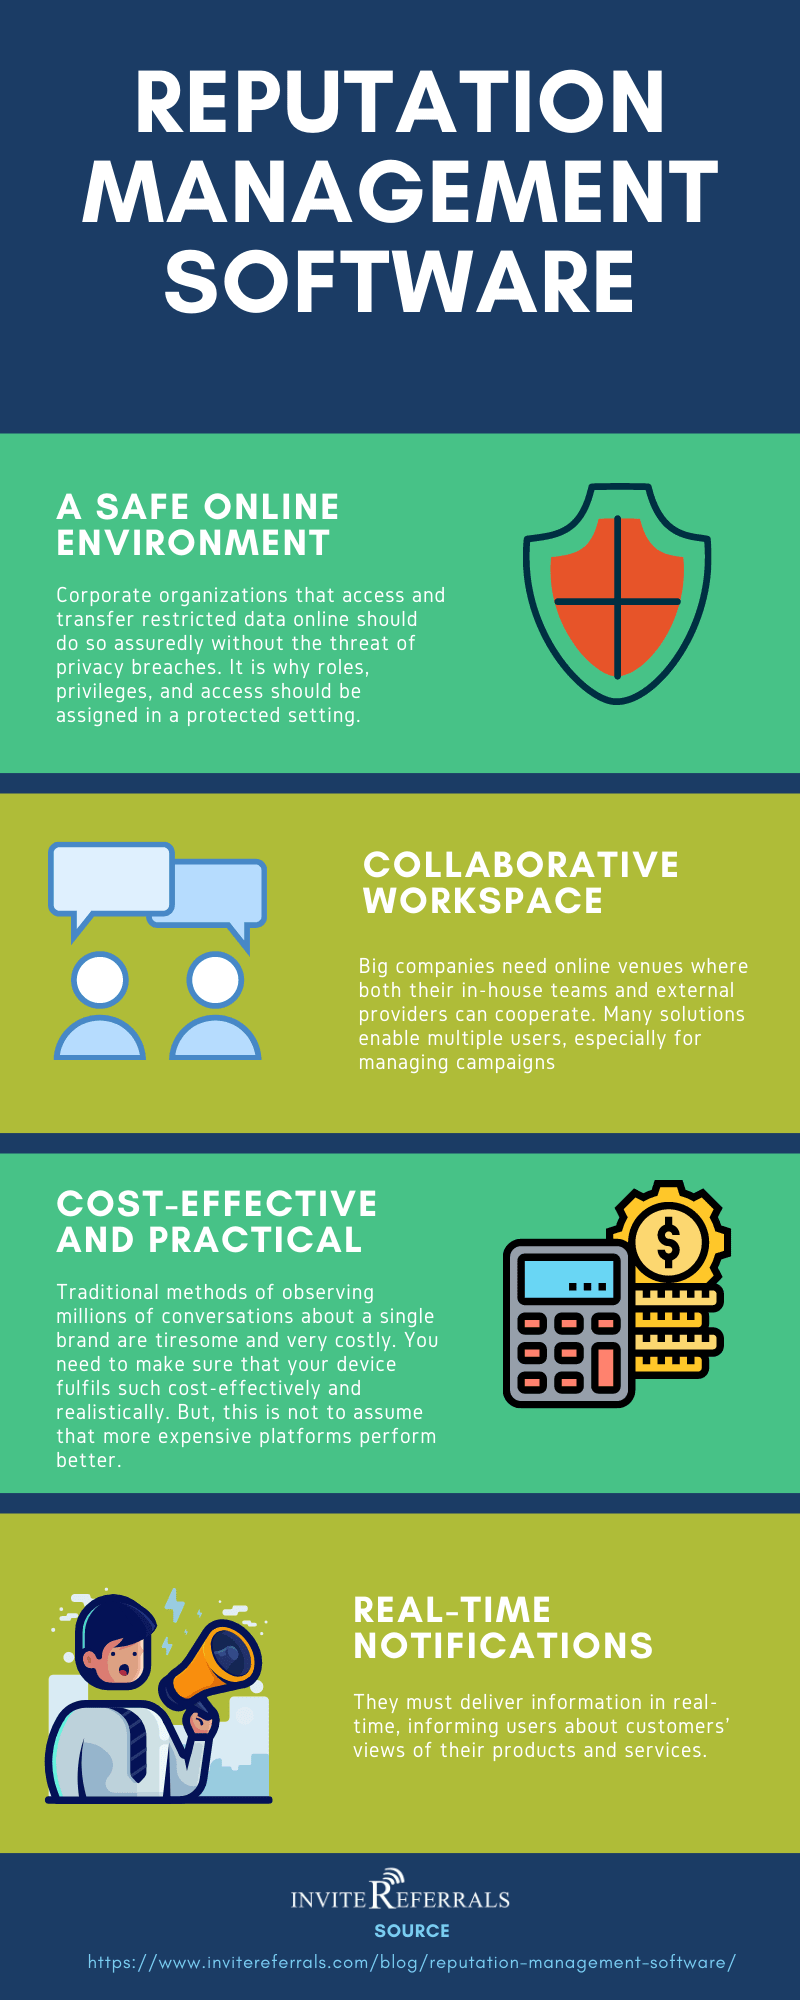 Reputation management software infographic